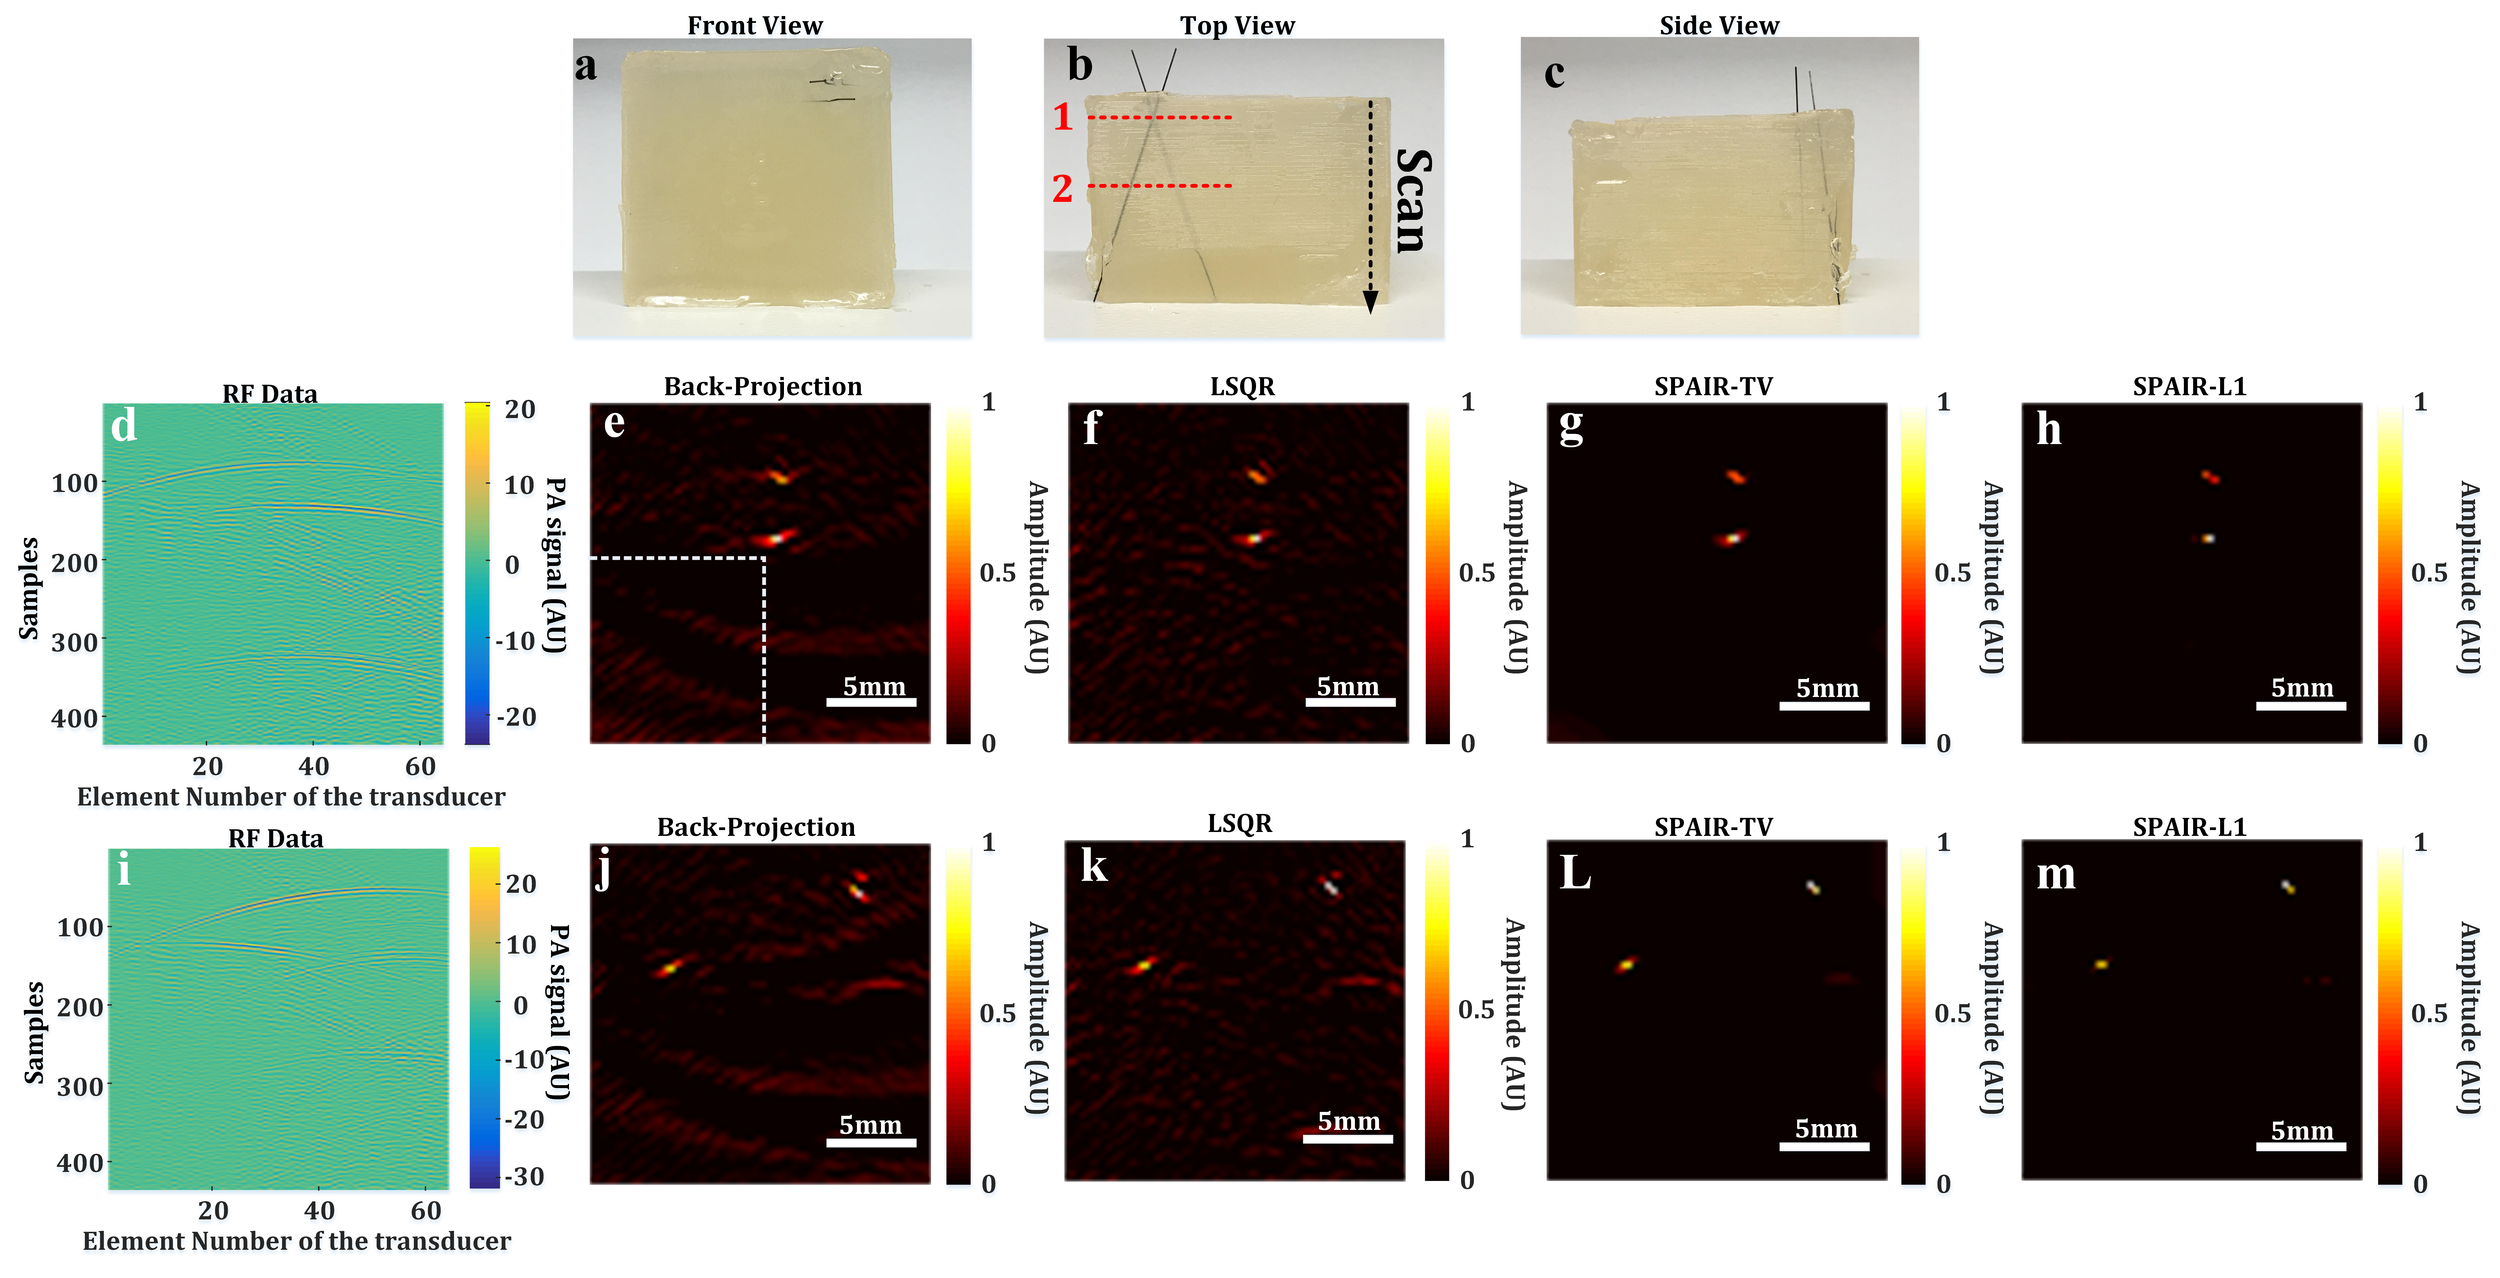 Fig. 2 Experimental results on tissue-mimicking phantoms with two graphite inclusions. (a~c) 3D perspectives of the tissue-mimicking phantom with two graphite inclusions; (d) Experimentally collected RF data at the first scanning location in (b); (e) Reconstructed IPD image from the back projection approach at the first scanning location in (b); (f) Reconstructed IPD image from the LSQR approach at the first scanning location in (b); (g) Reconstructed IPD image from SPAIR with TV regularization at the first scanning location in (b); (h) Reconstructed IPD image from SPAIR with L1 regularization at the first scanning location in (b); (i) Experimentally collected RF data at the second scanning location in (b); (j) Reconstructed IPD image from the back projection approach at the second scanning location in (b); (k) Reconstructed IPD image from the LSQR approach at the second scanning location in (b); (L) Reconstructed IPD image from SPAIR with TV regularization at the second scanning location in (b); (h) Reconstructed IPD image from SPAIR with L1 regularization at the second scanning location in (b). The scale bar is 5mm.